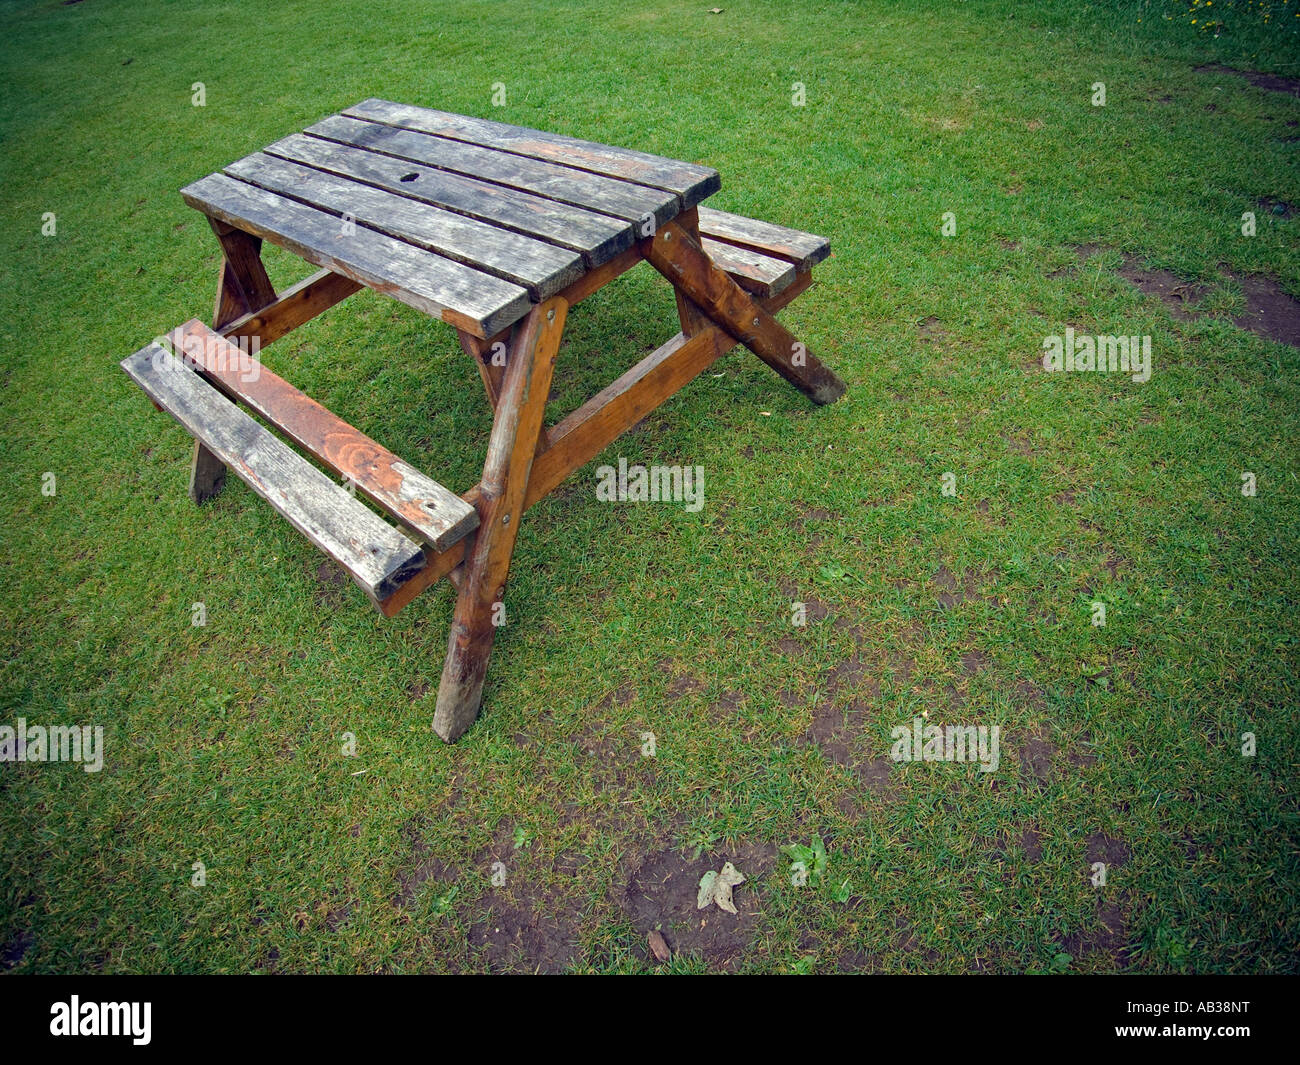 Park Wood Timber Picnic Seat Stock Photos Park Wood Timber Picnic - Timber picnic table